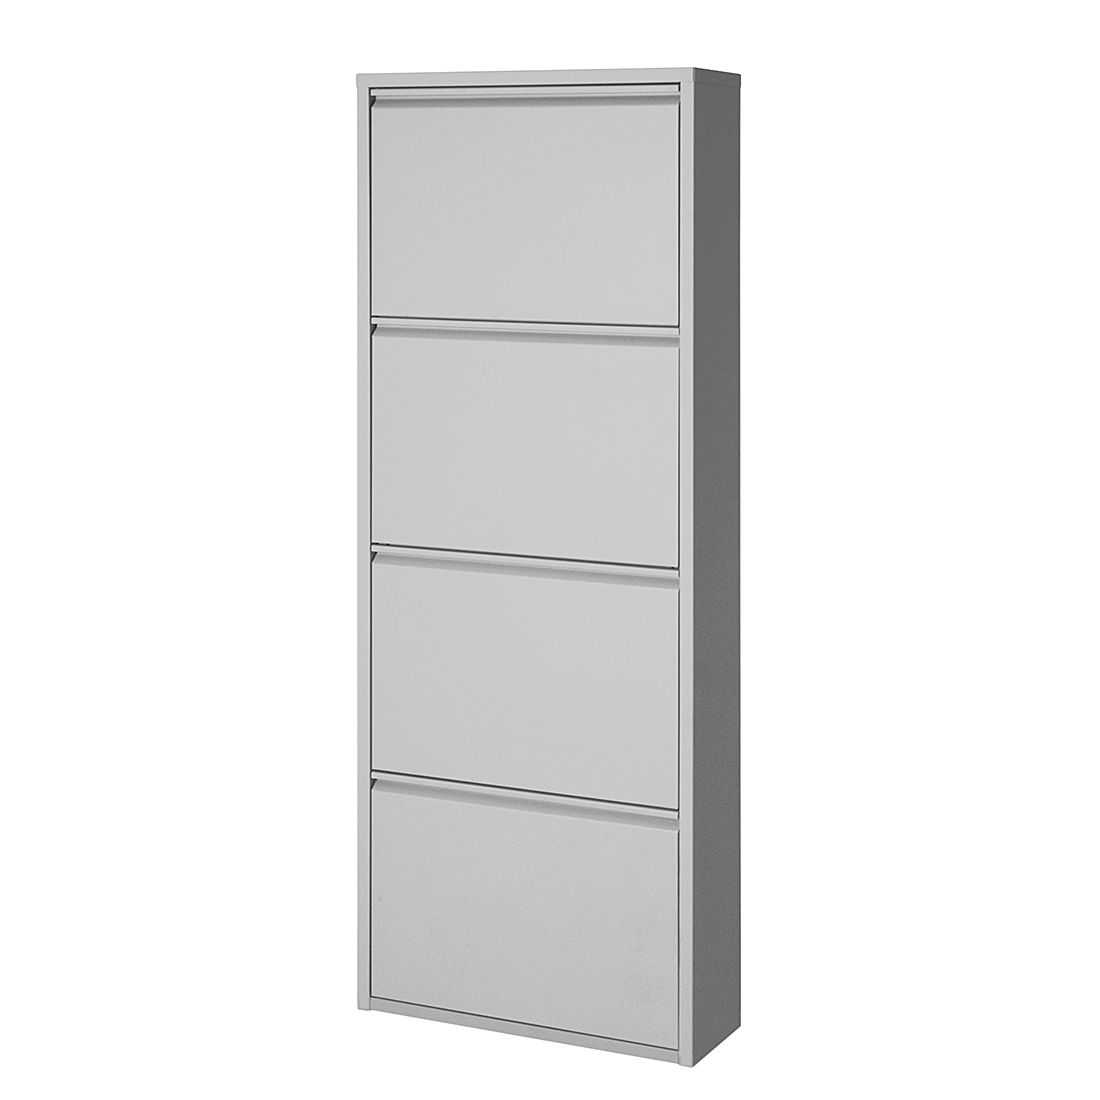 schuhschrank cabinet 4 klappen grau schuhkommode. Black Bedroom Furniture Sets. Home Design Ideas